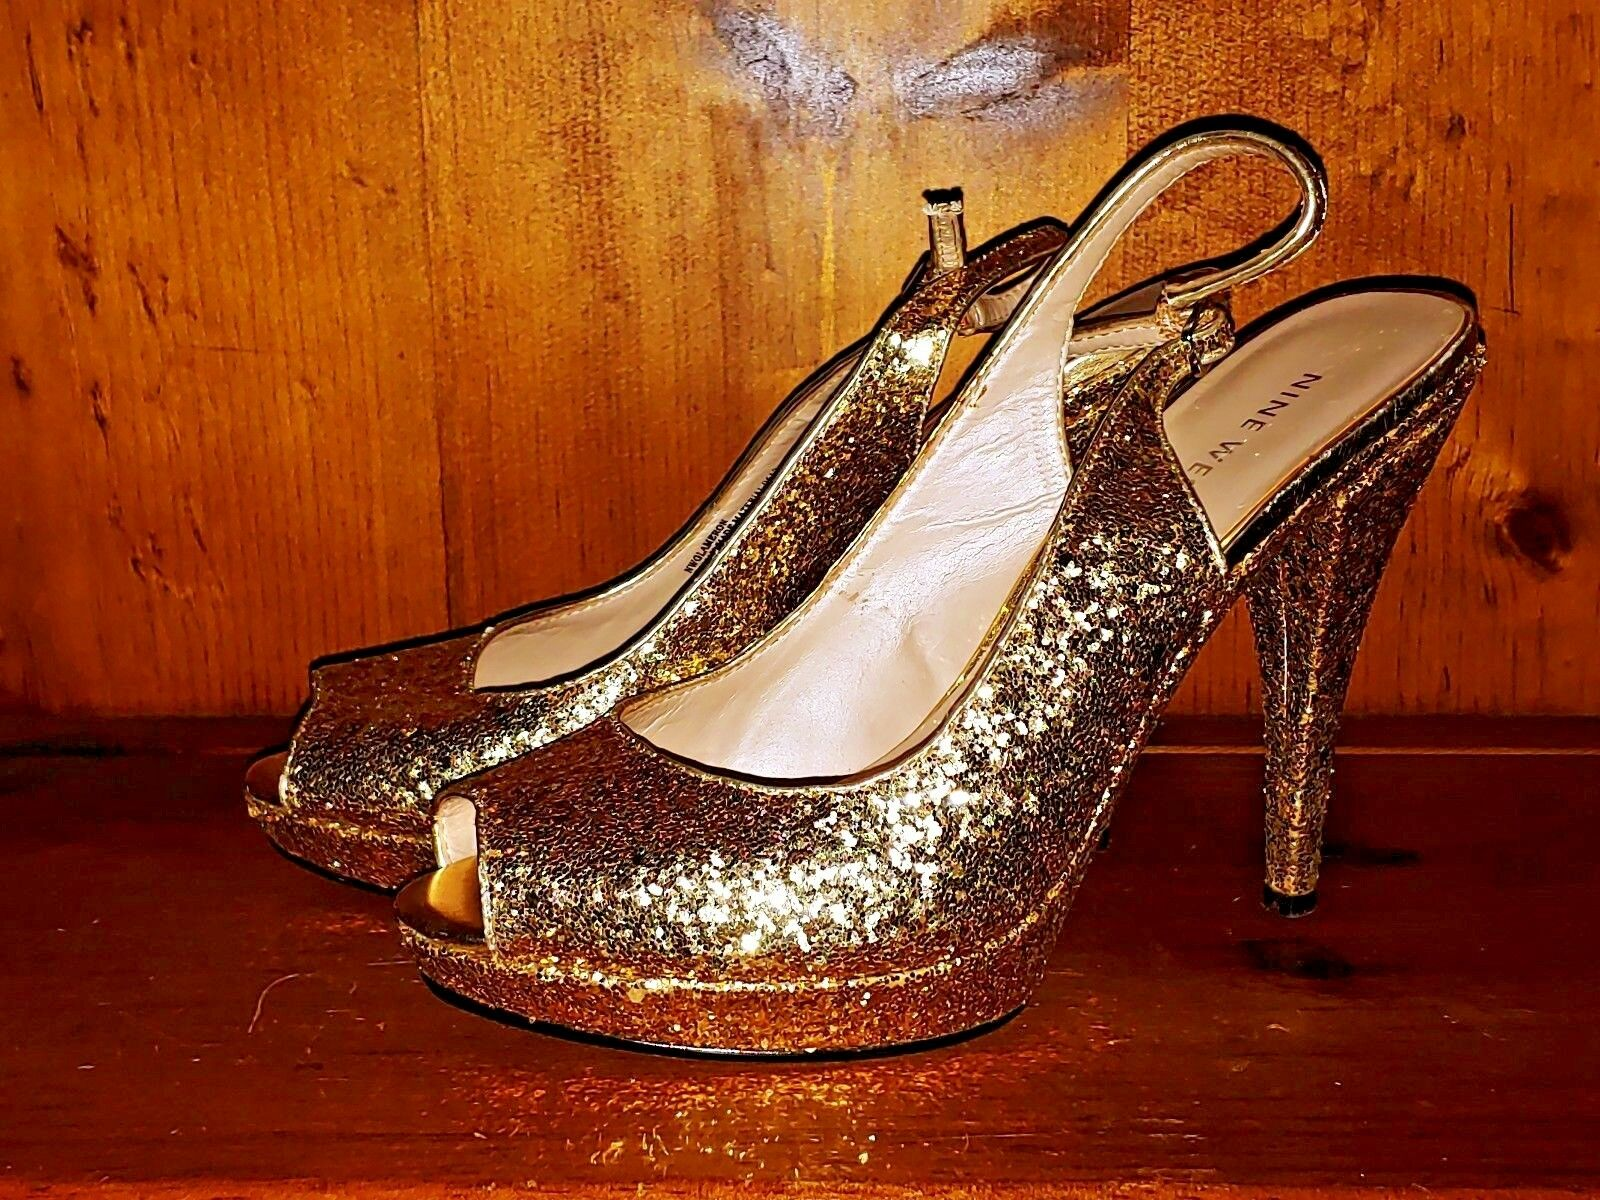 NINE WEST All All All That Glitter is gold Slingbacks High Heels Women shoes Sz 7.5 b4 74a16c